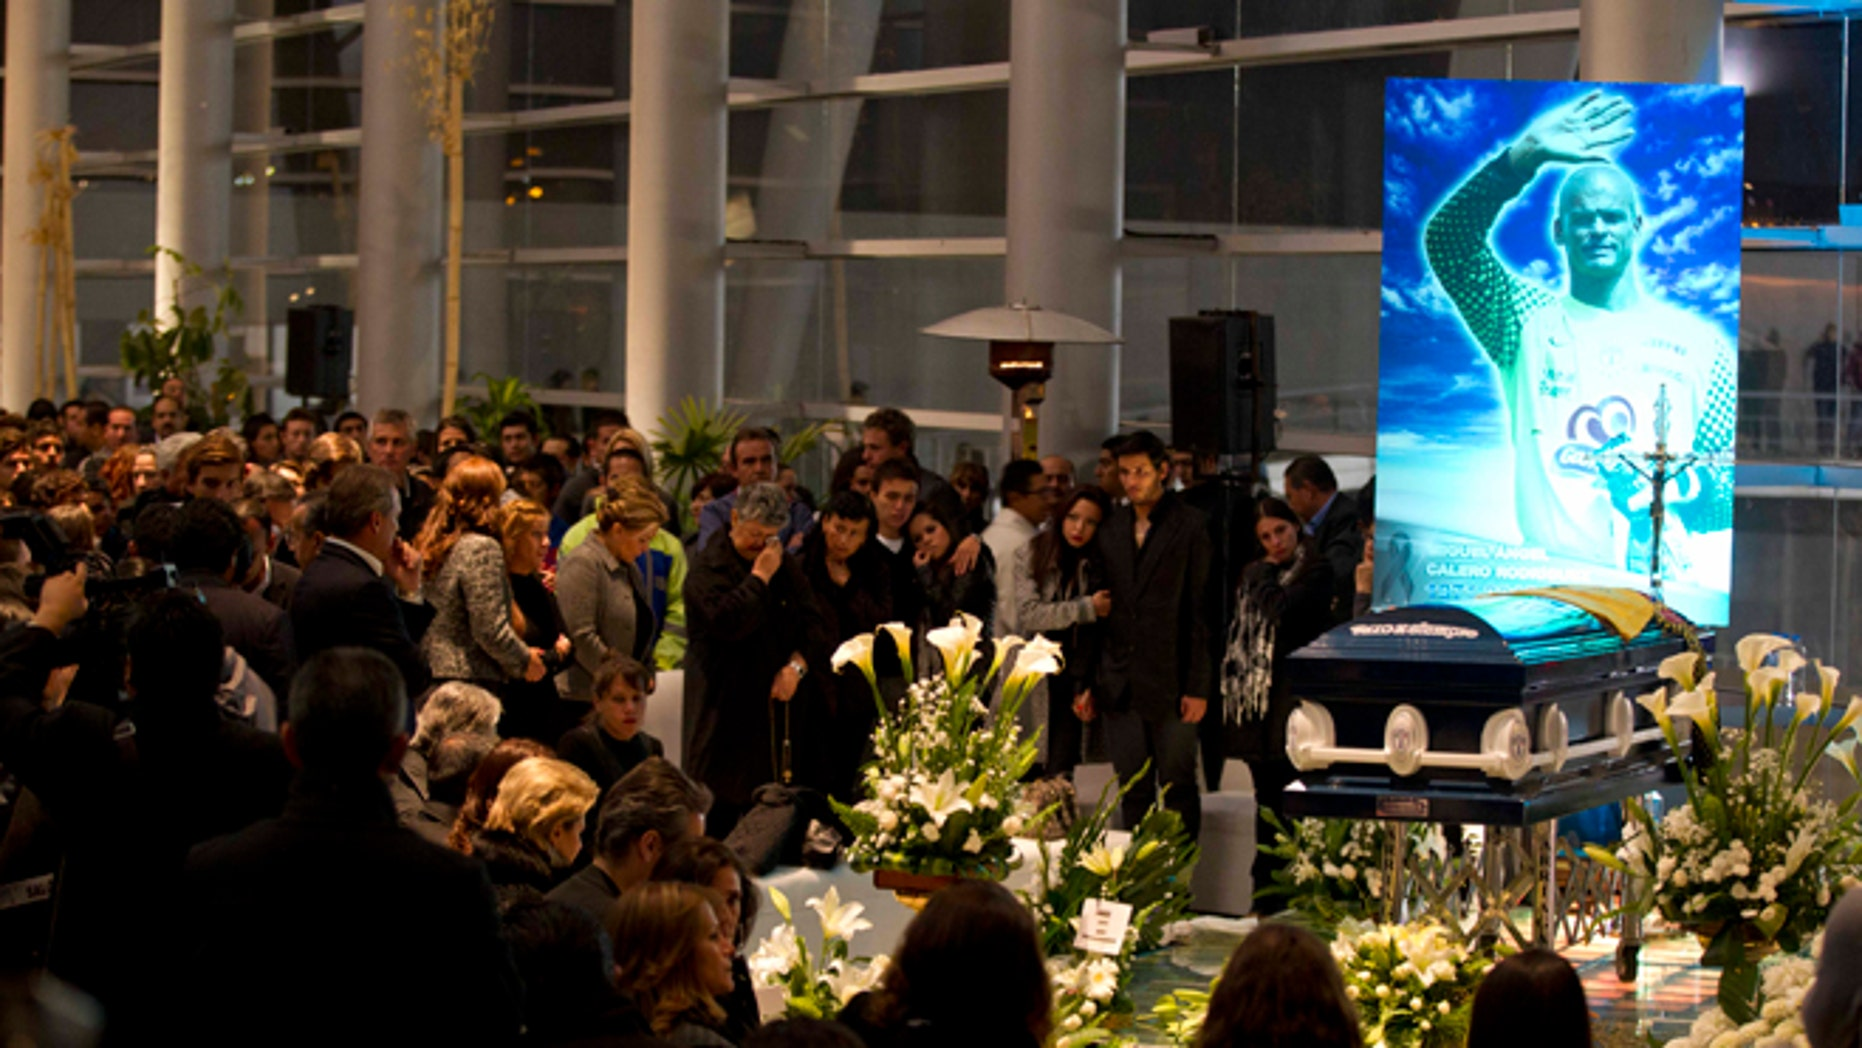 People attend the wake of Colombia's former goalkeeper Miguel Calero in Pachuca, Mexico, Tuesday, Dec. 4, 2012. Calero died on Tuesday after suffering a stroke on Nov. 25. (AP Photo/Eduardo Verdugo)